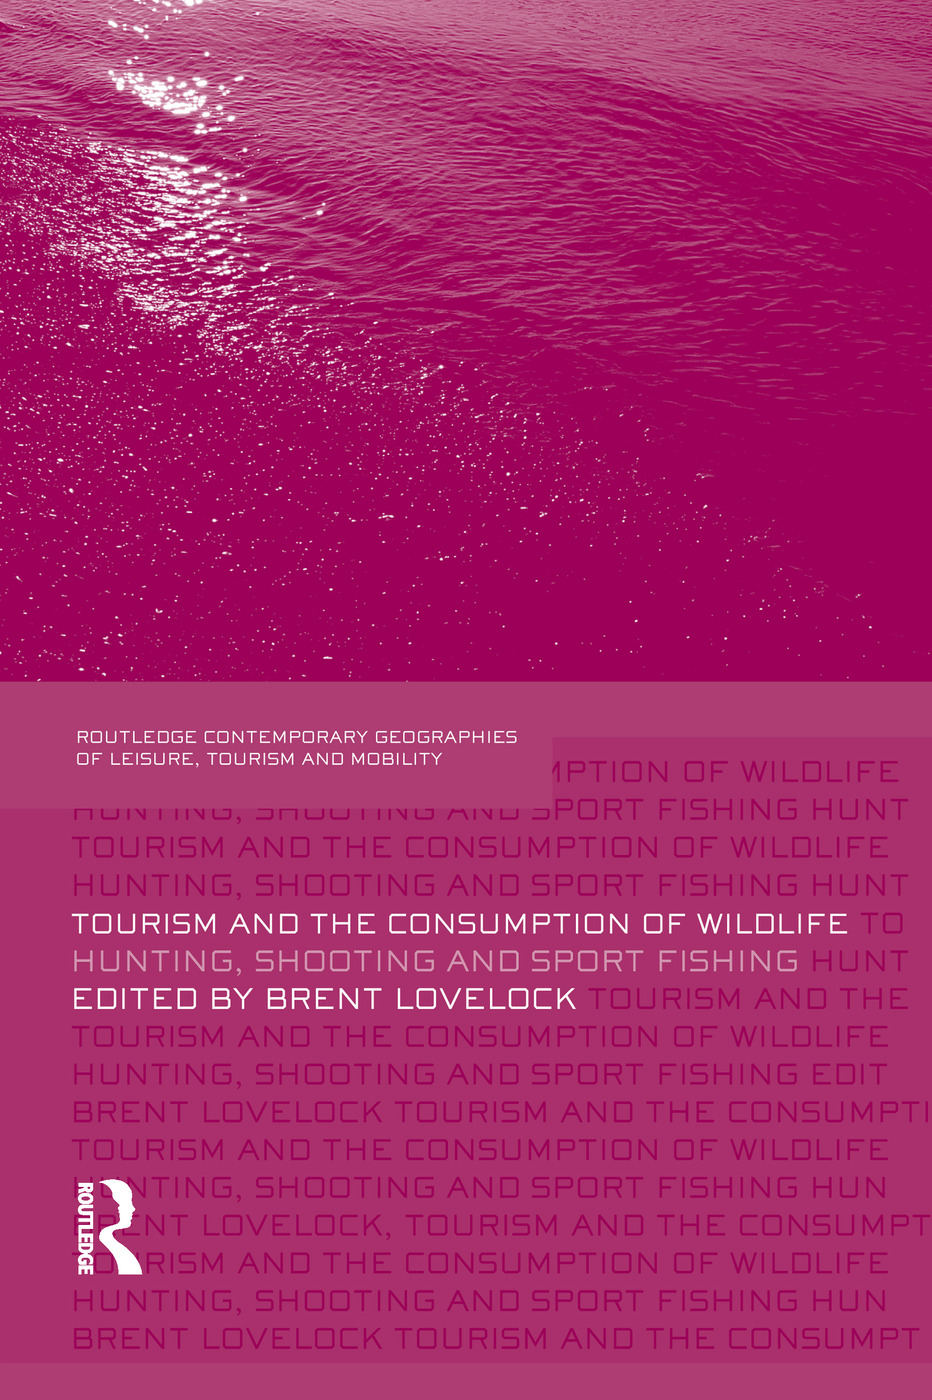 Tourism and the Consumption of Wildlife